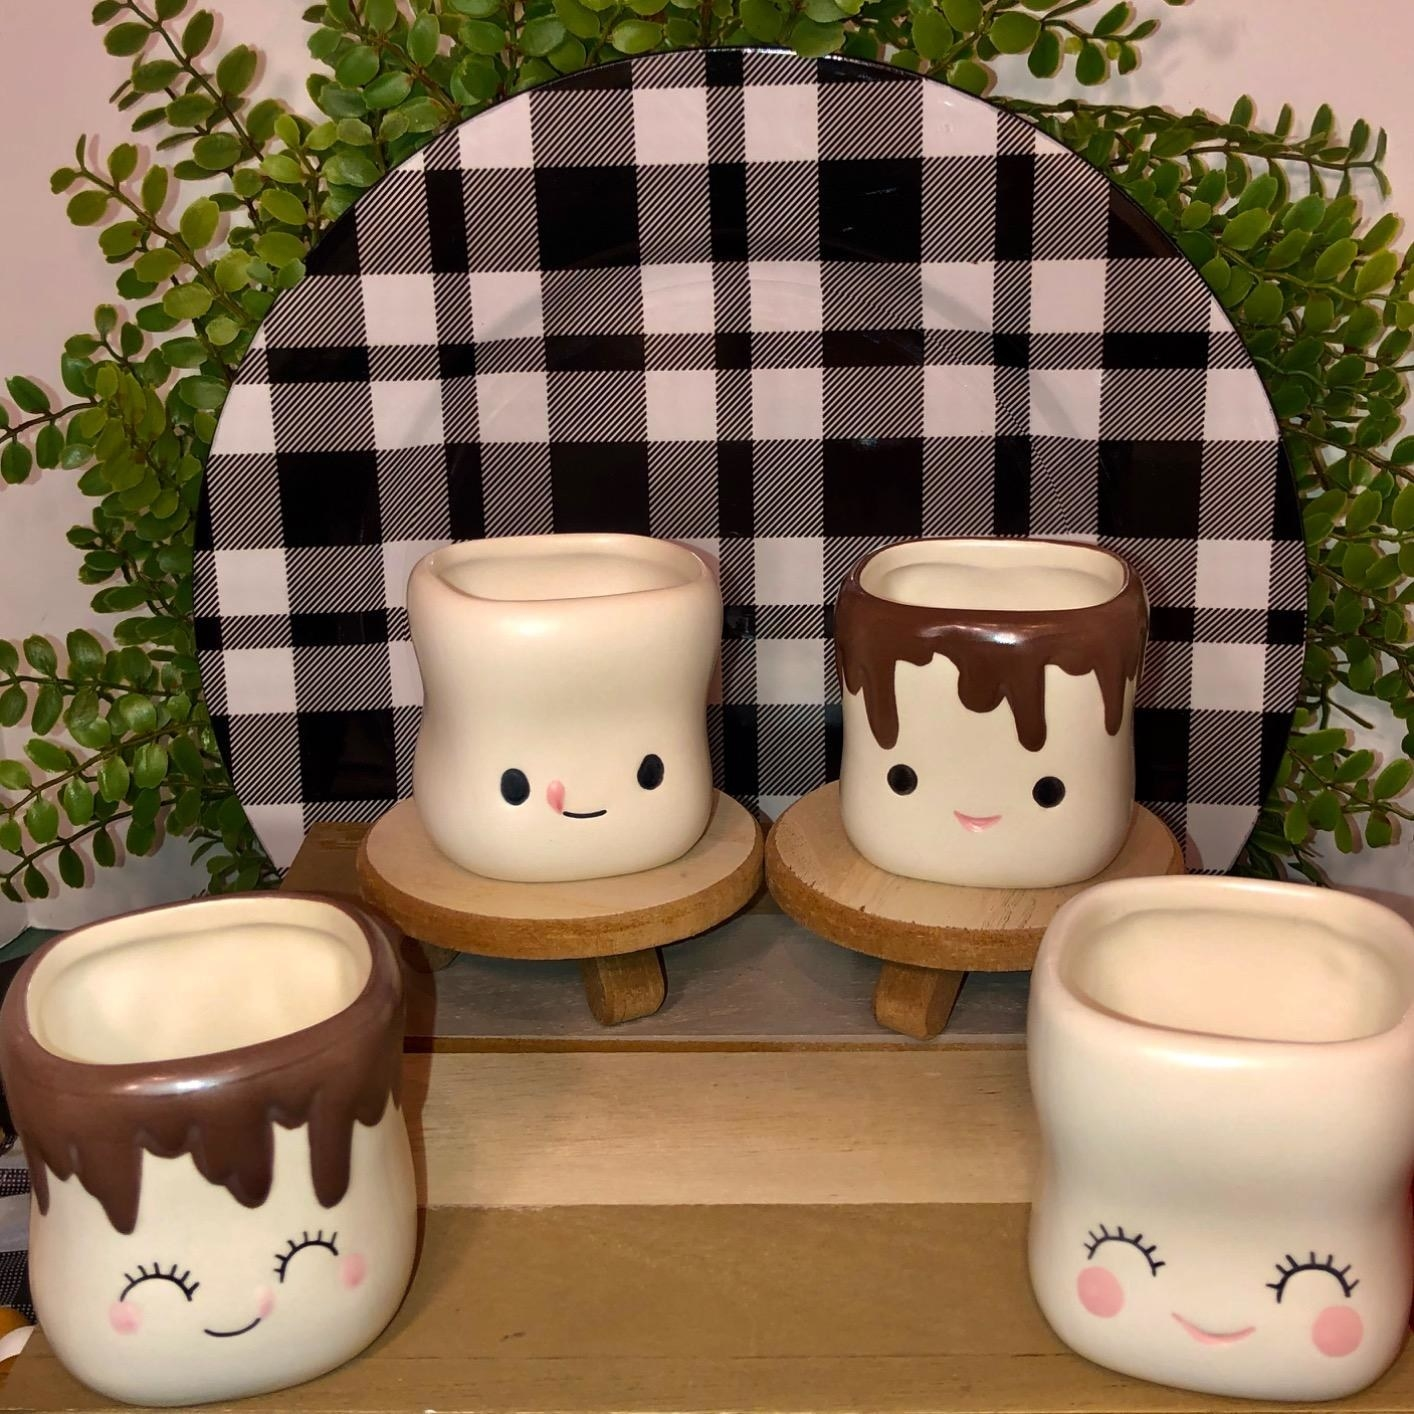 A reviewer showing four mugs designed to look like marshmallows with smiley faces on them